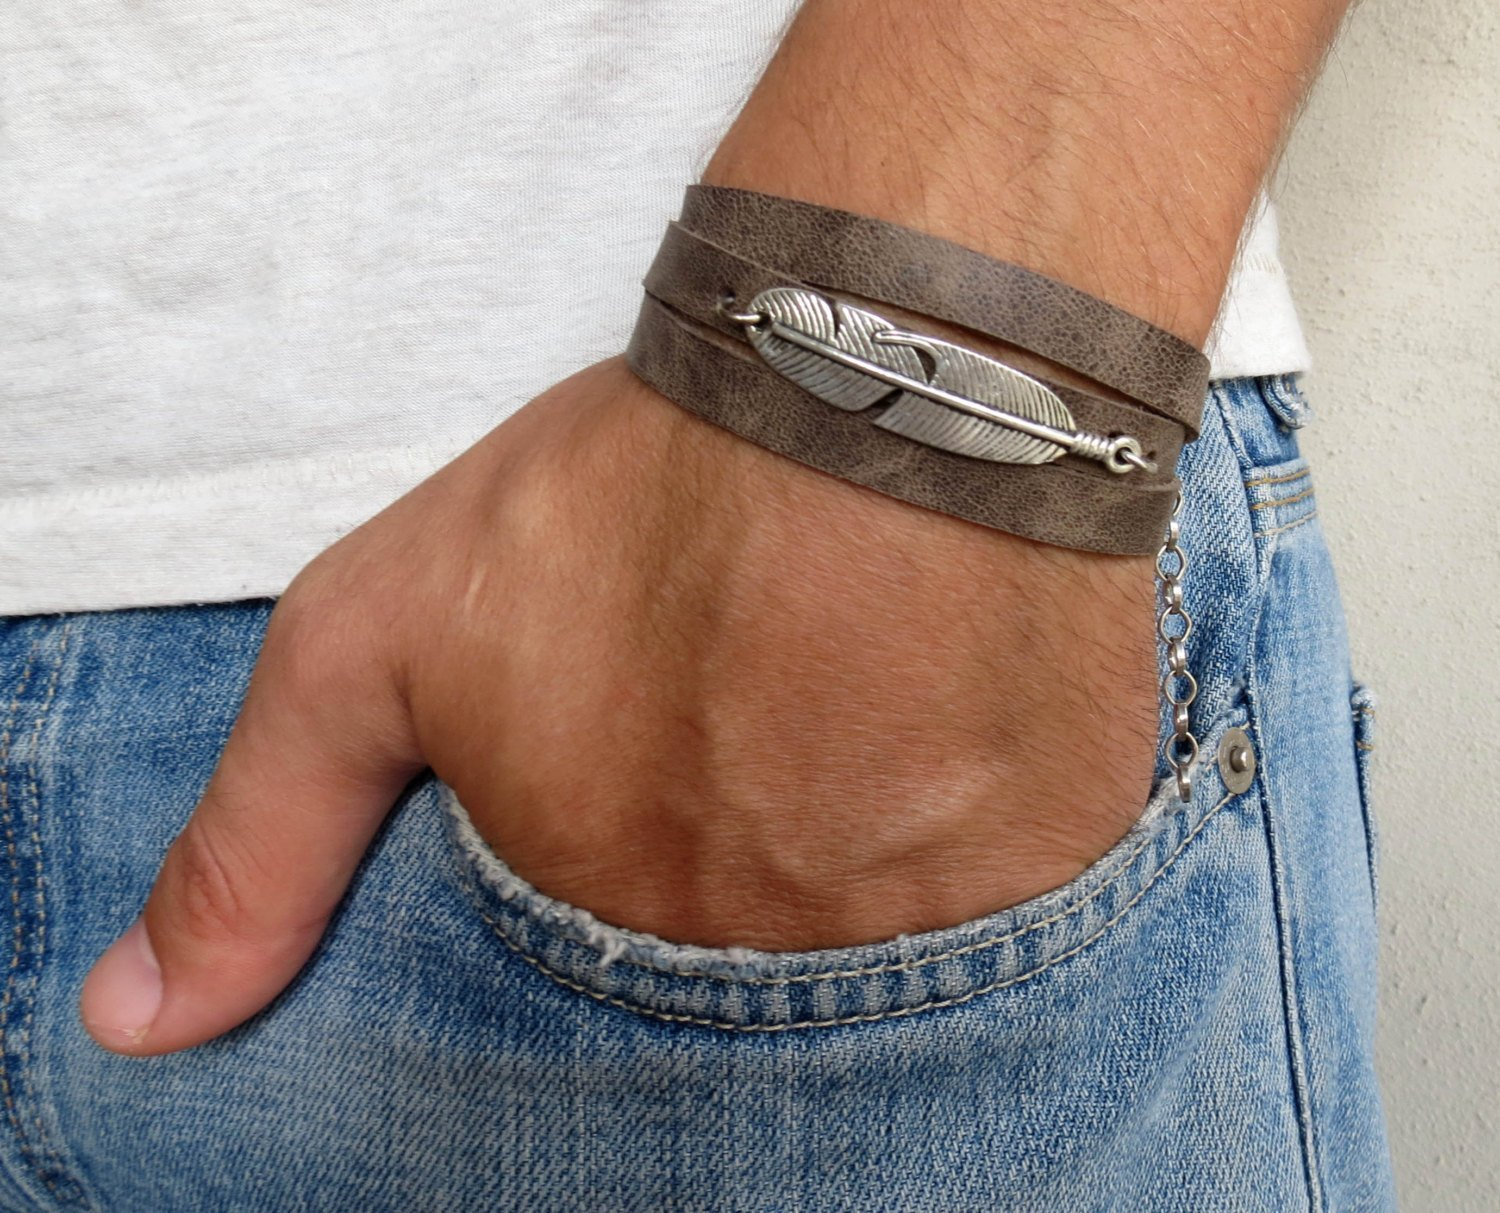 Feather Bracelet For Men Leather Bracelet For Men Handmade Gray Genuine Leather Wrap Bracelet Set With Silver Plated Feather Pendant For Men By Galis Jewelry